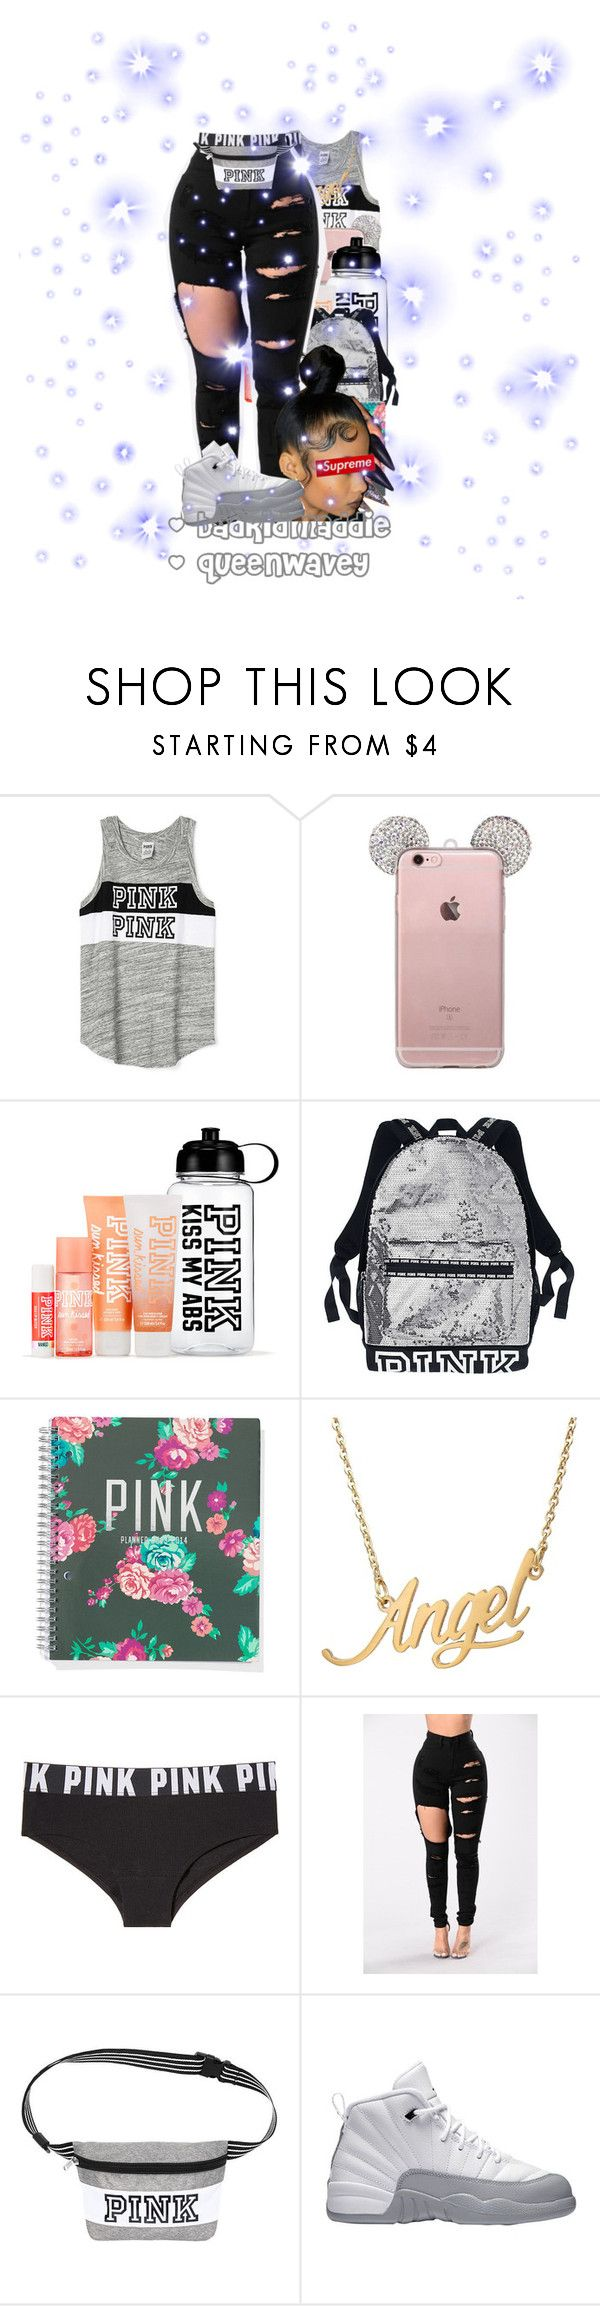 """Untitled #155"" by fwmaddieeee ❤ liked on Polyvore featuring Victoria's Secret PINK and Victoria's Secret"